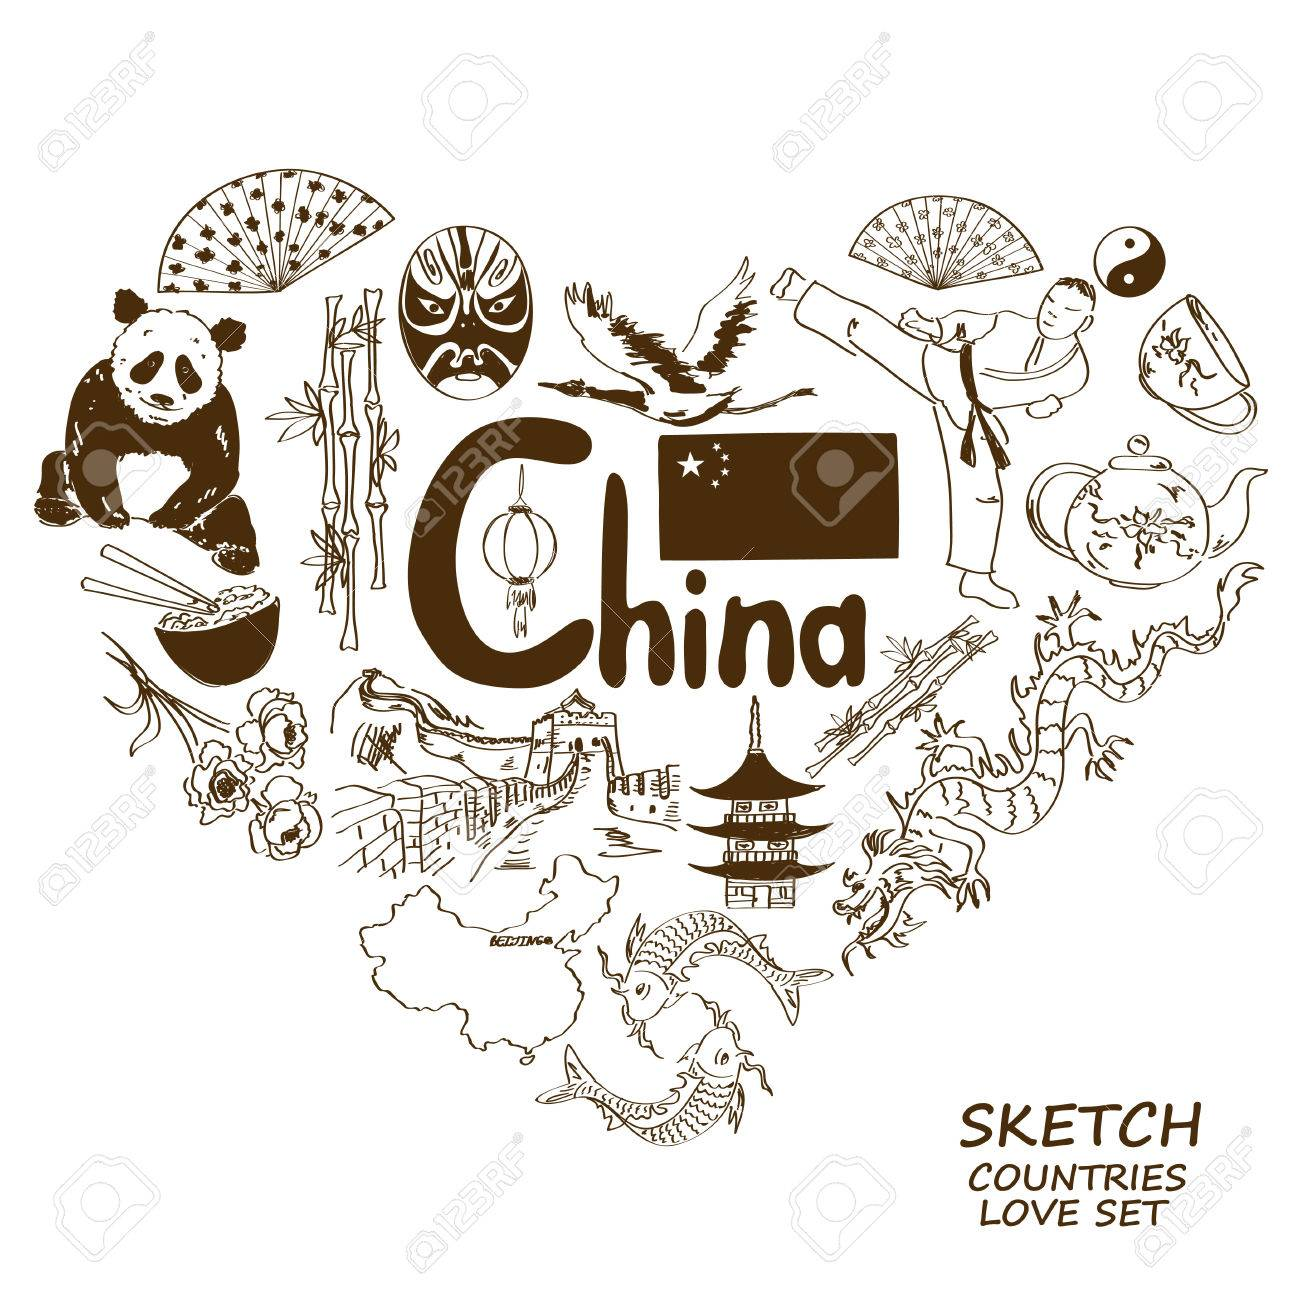 Symbols in heart of darkness choice image symbol and sign ideas kung fu panda images stock pictures royalty free kung fu panda sketch collection of chinese symbols biocorpaavc